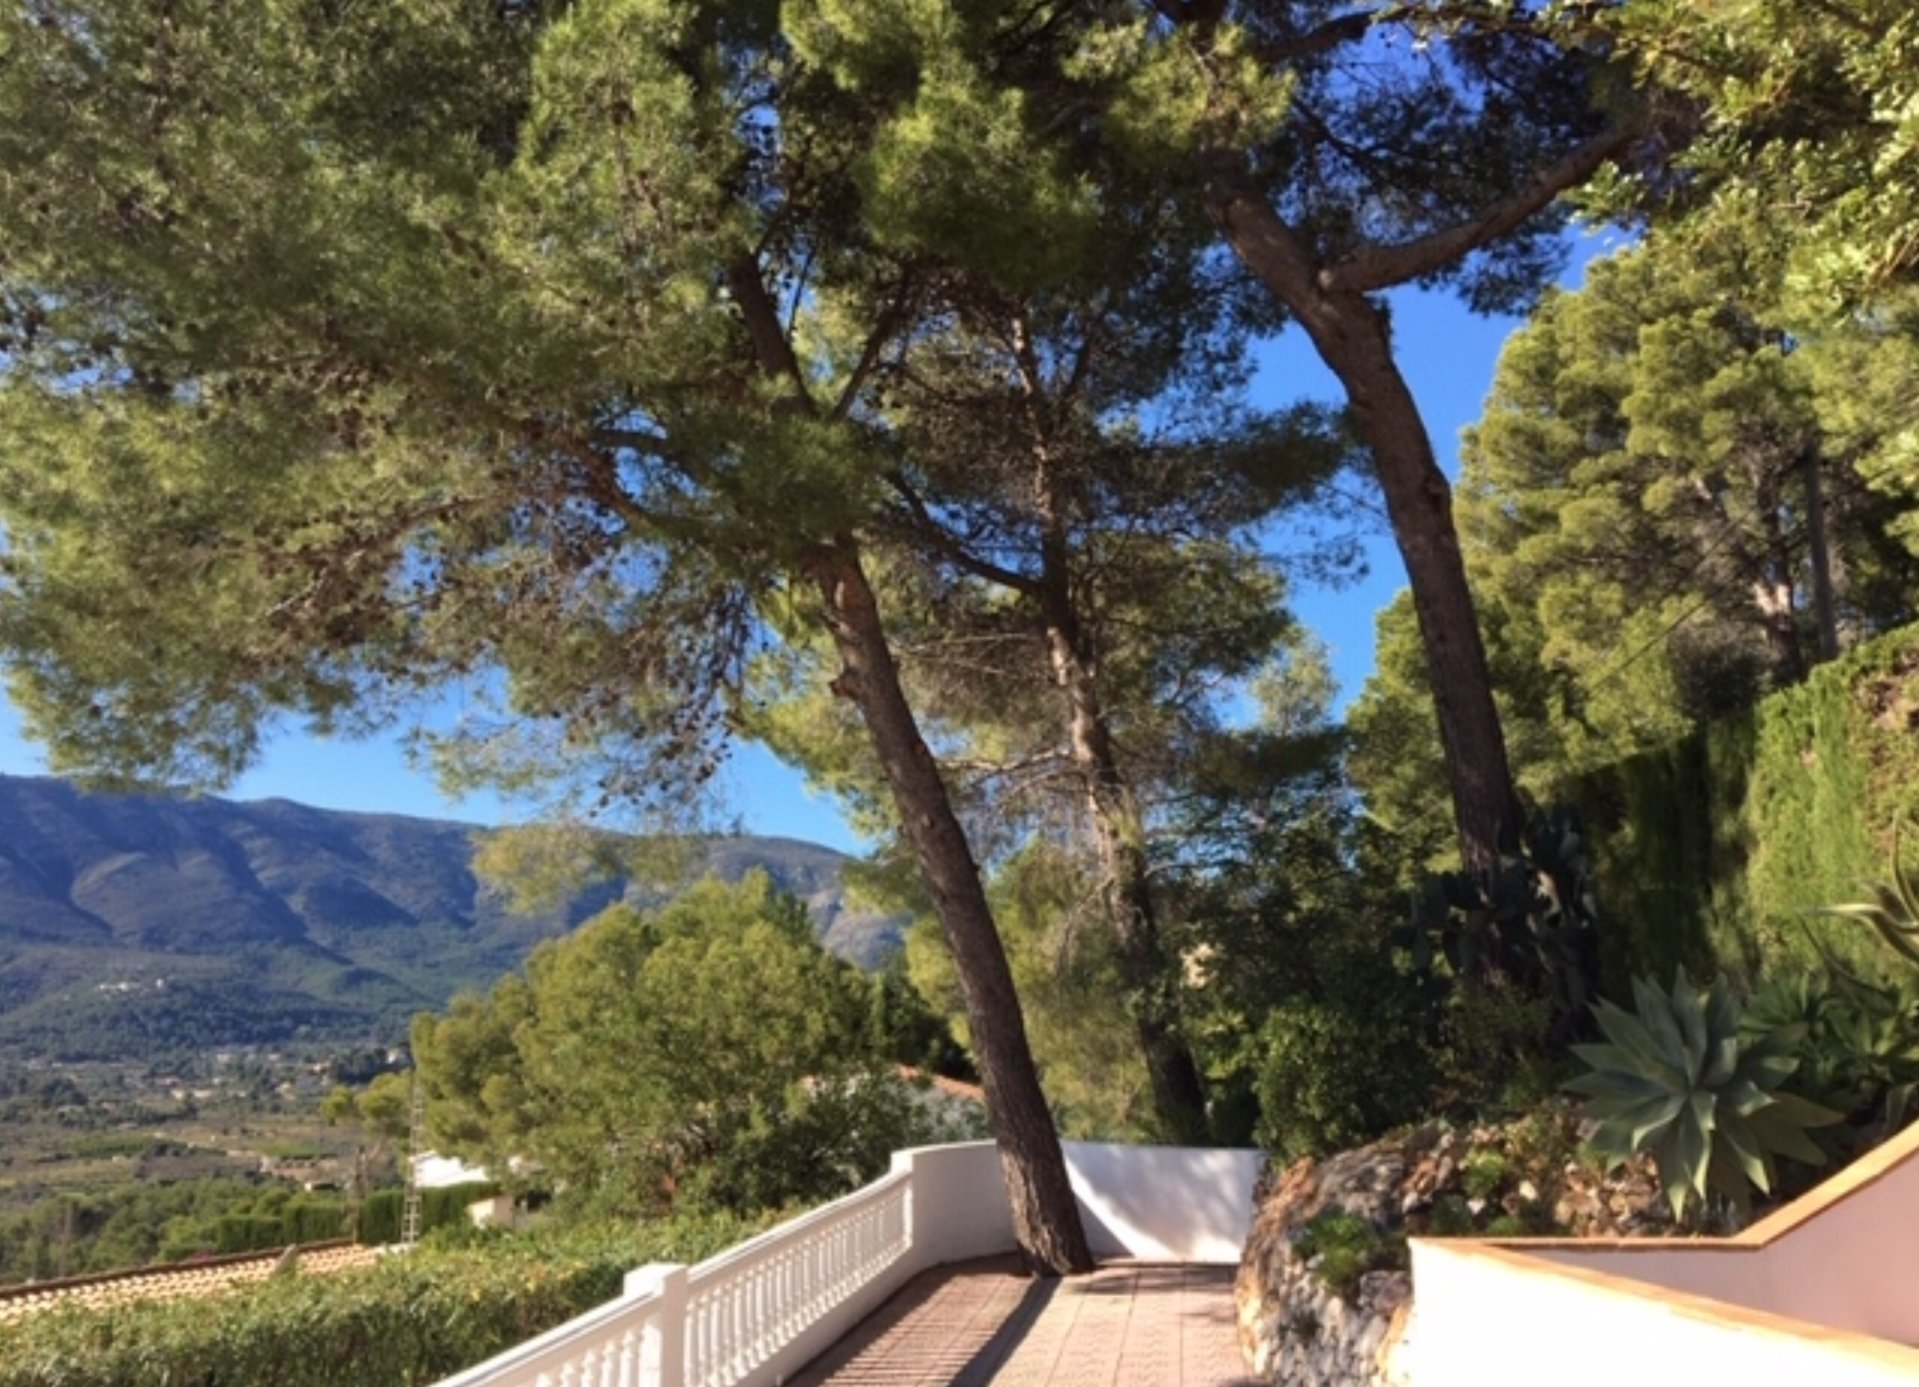 Villa with stunning south facing views across the Jalon valley